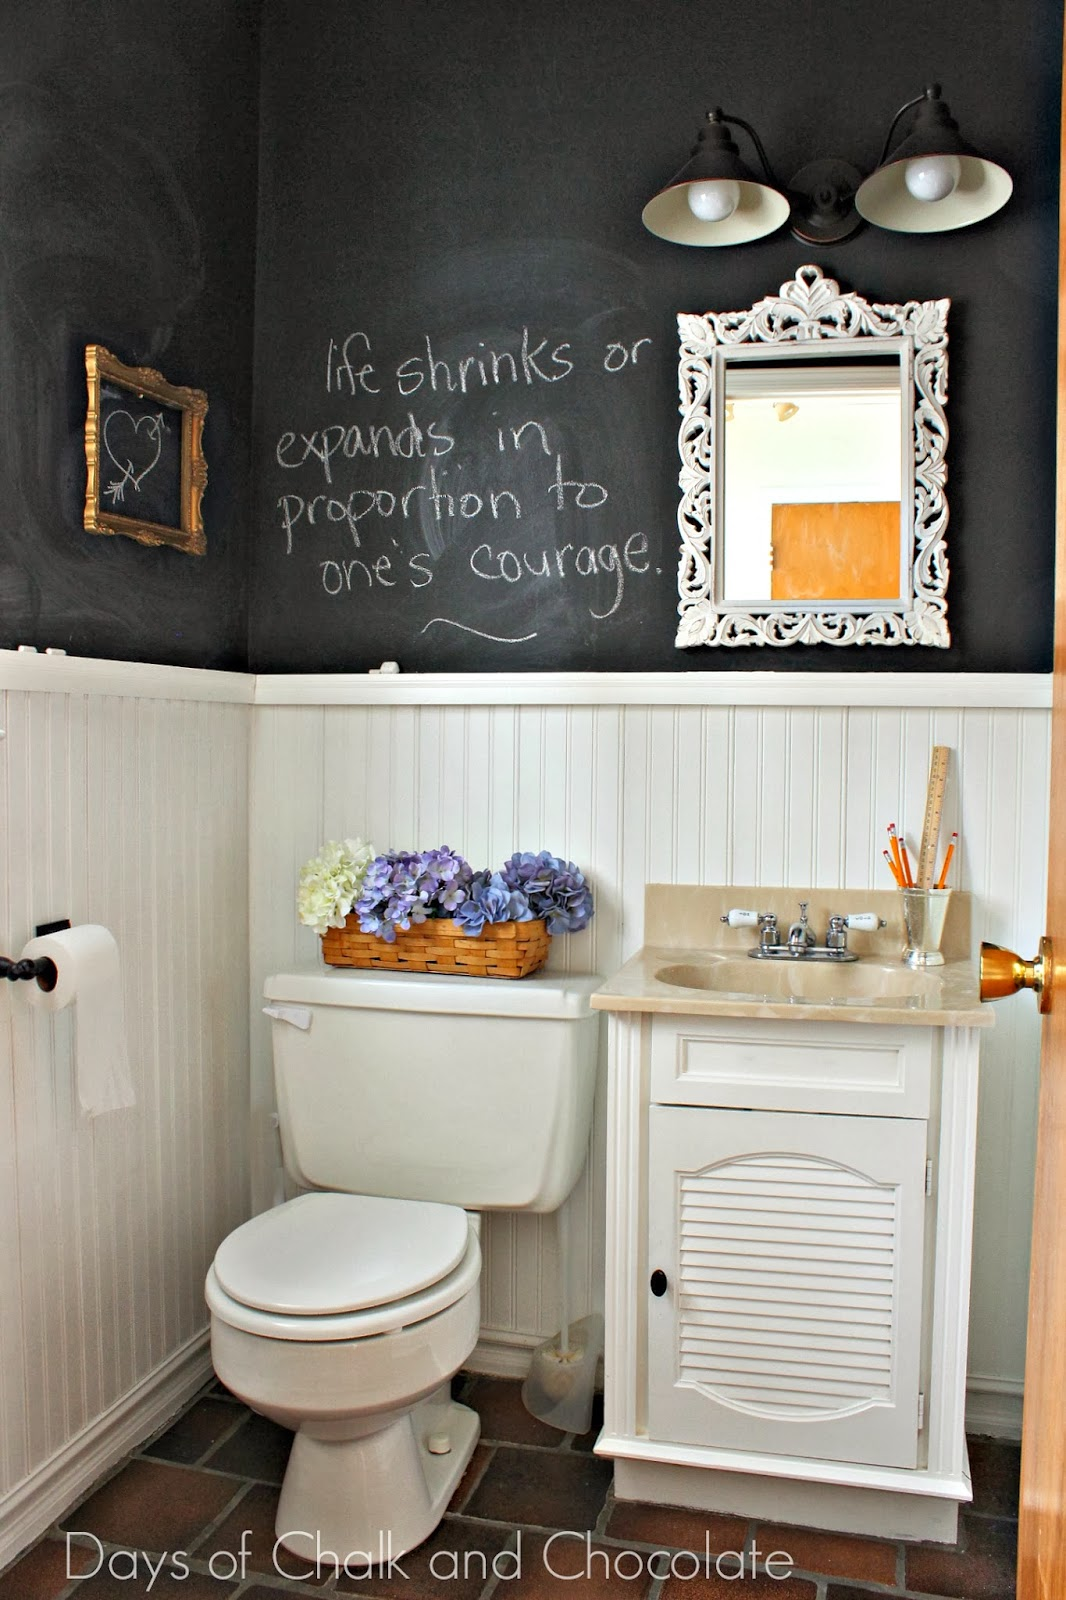 Days of Chalk and Chocolate Powder Room Reveal